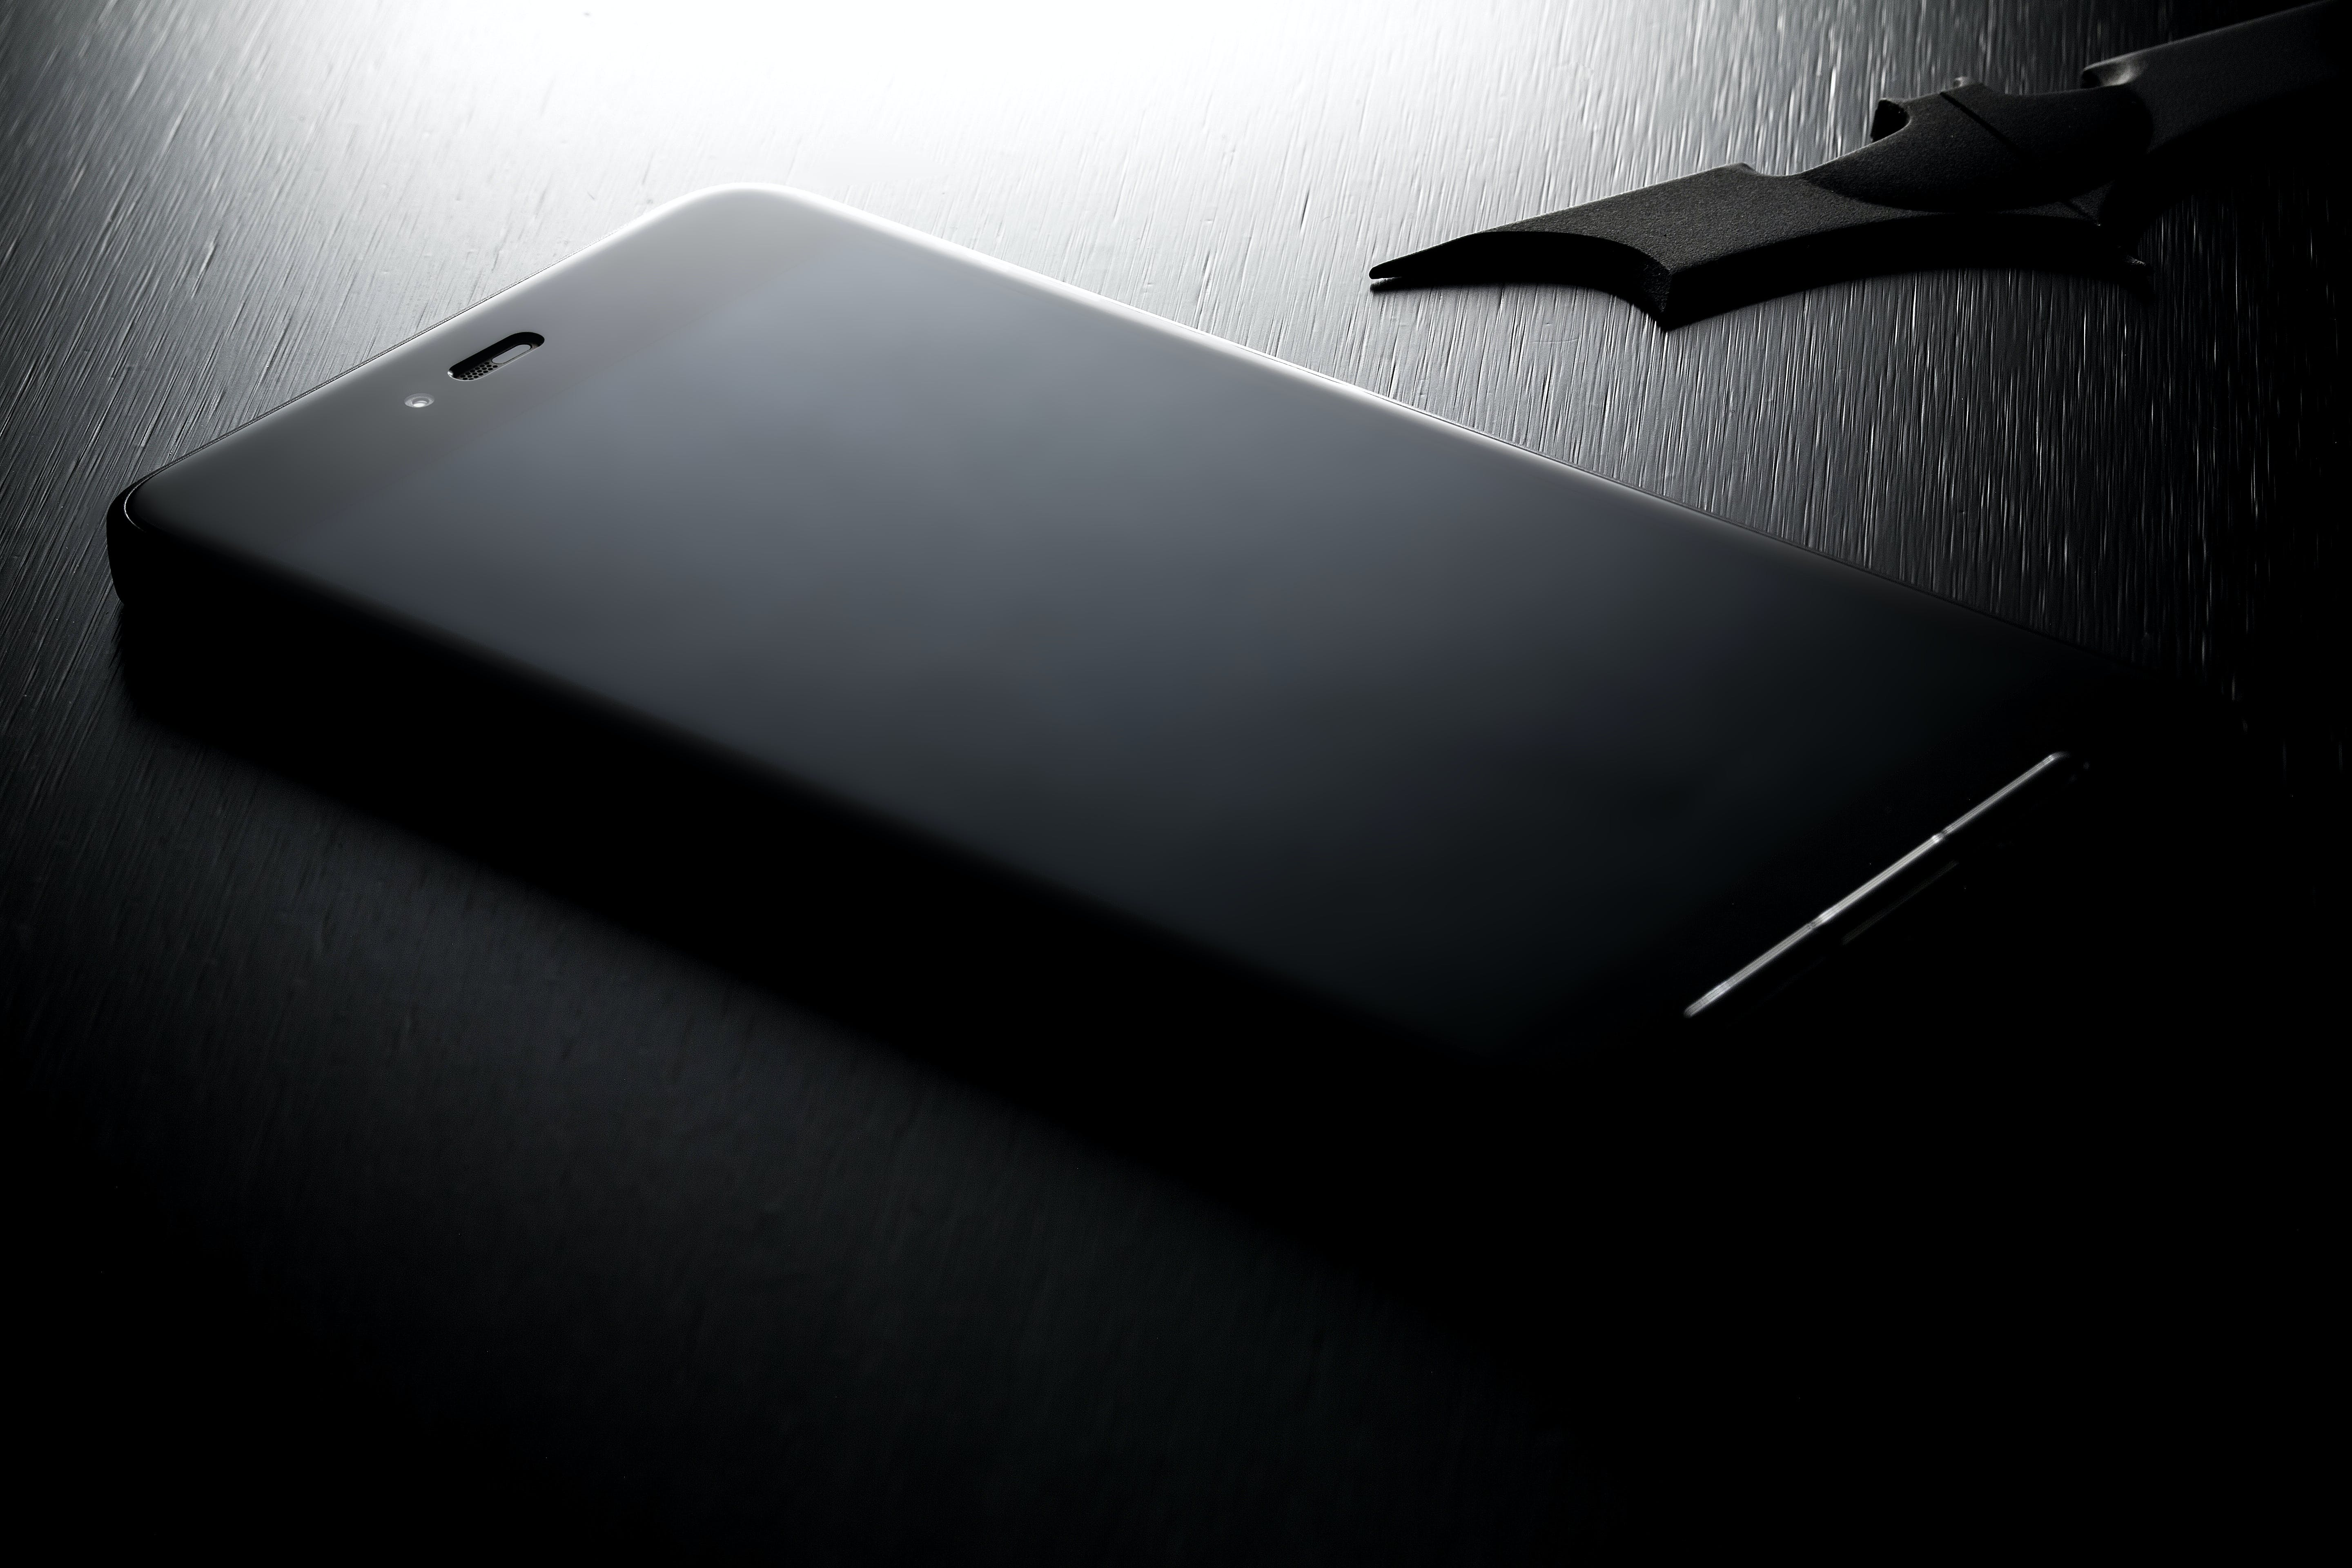 Black Android Smartphone